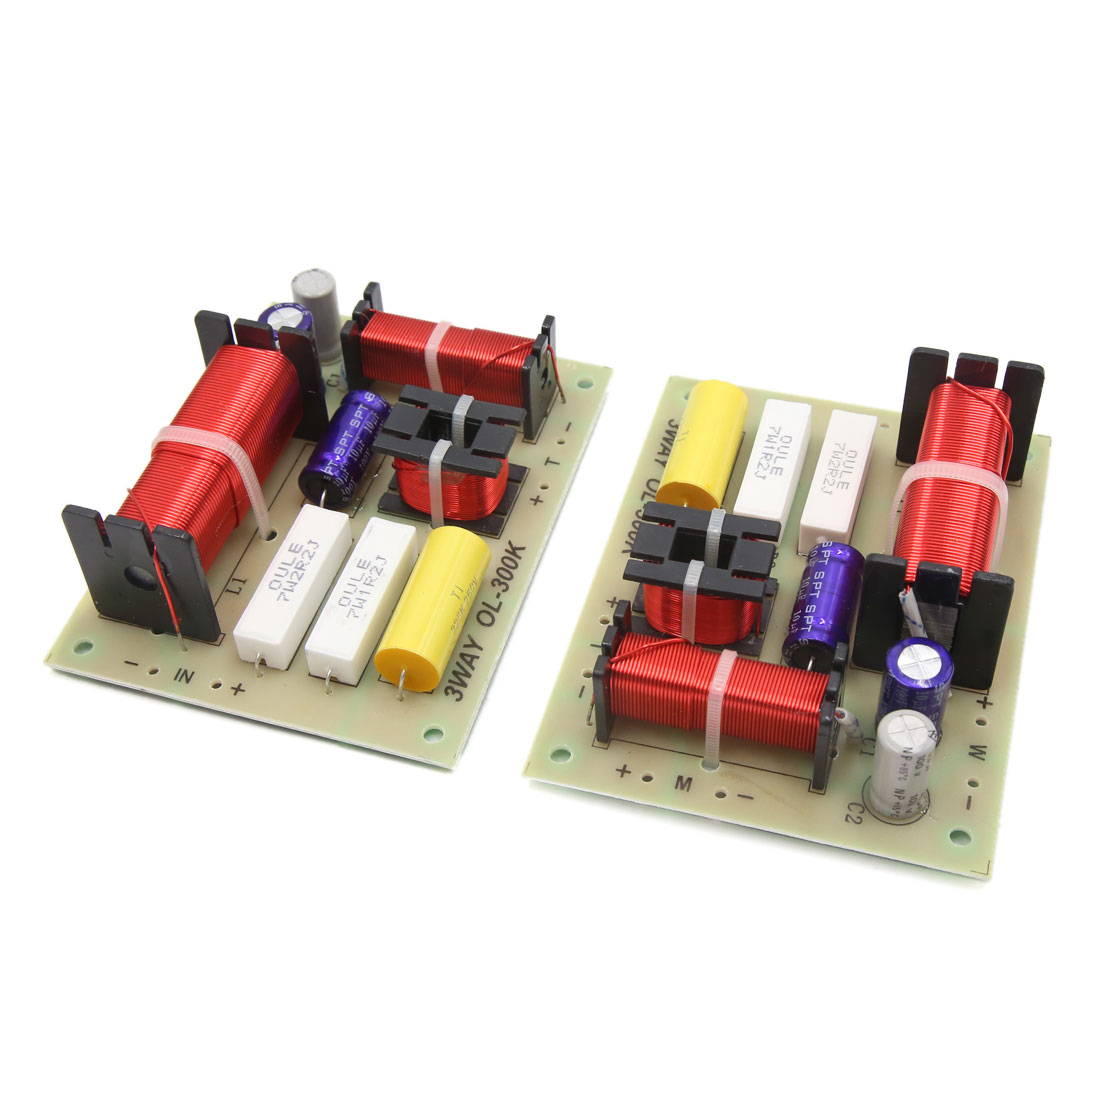 2Pcs 180W 3 Way Audio Speaker Frequency Divider Aplifier Crossover Filters Board